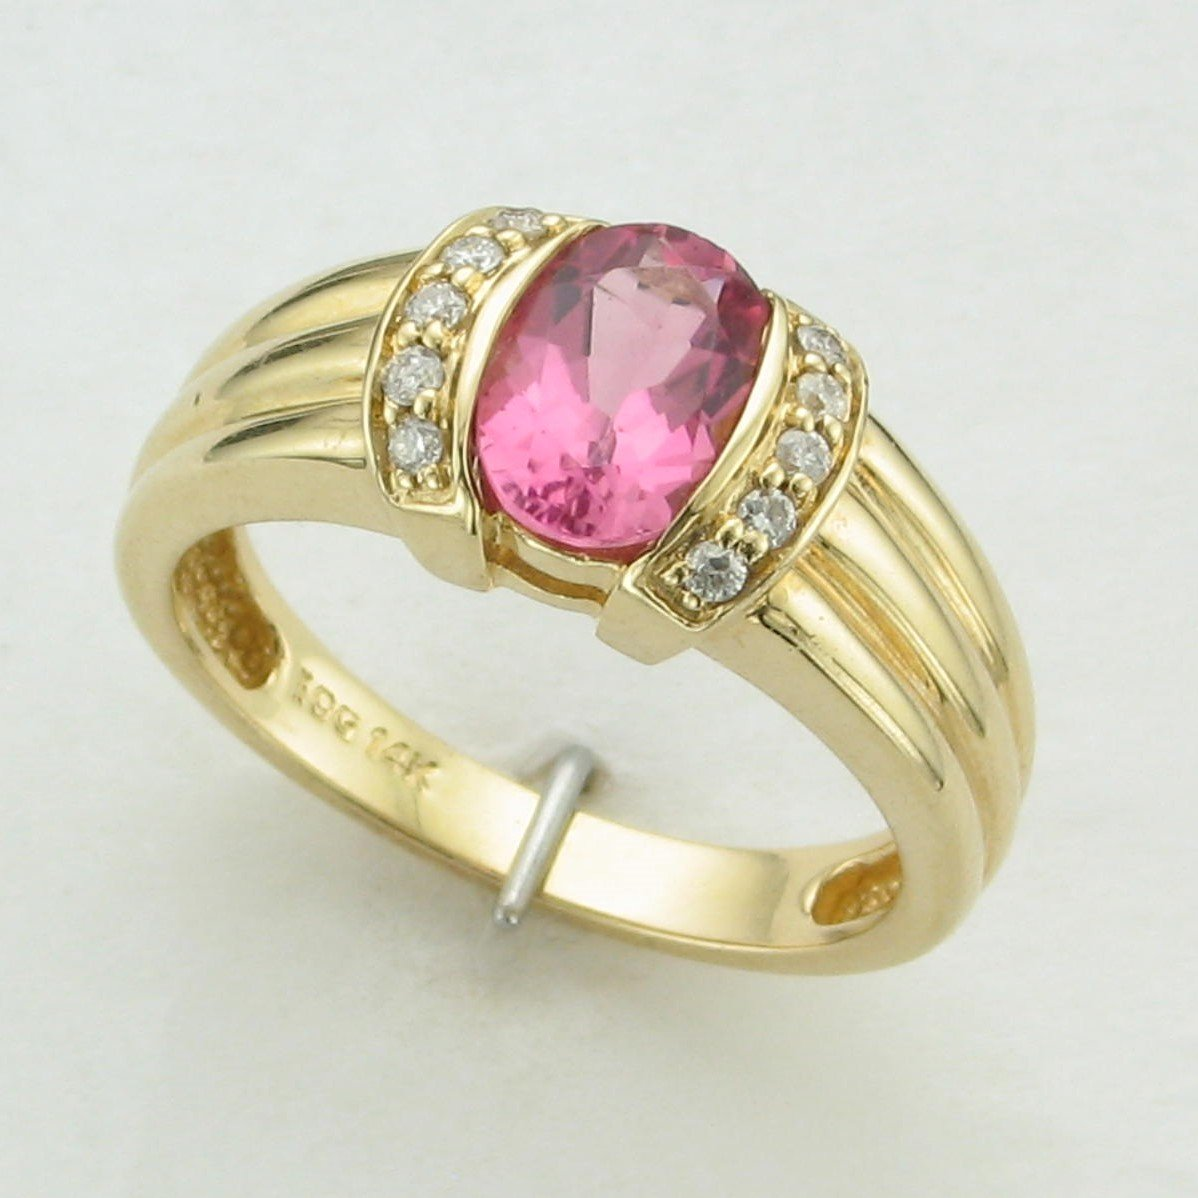 1.20 Carat Pink Tourmaline and Diamond Ring Set in 14 Karat Yellow Gold